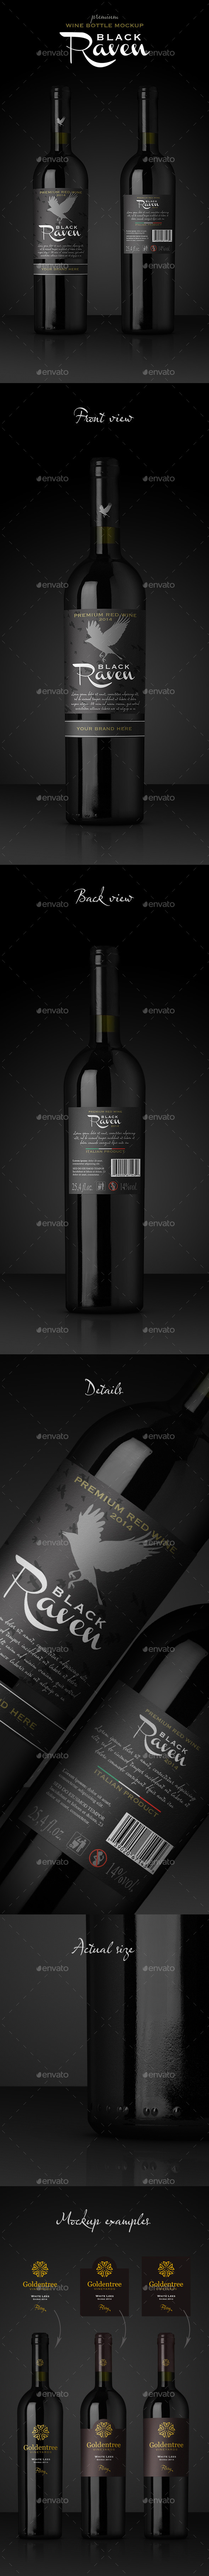 Premium Red Wine Mockup - Food and Drink Packaging